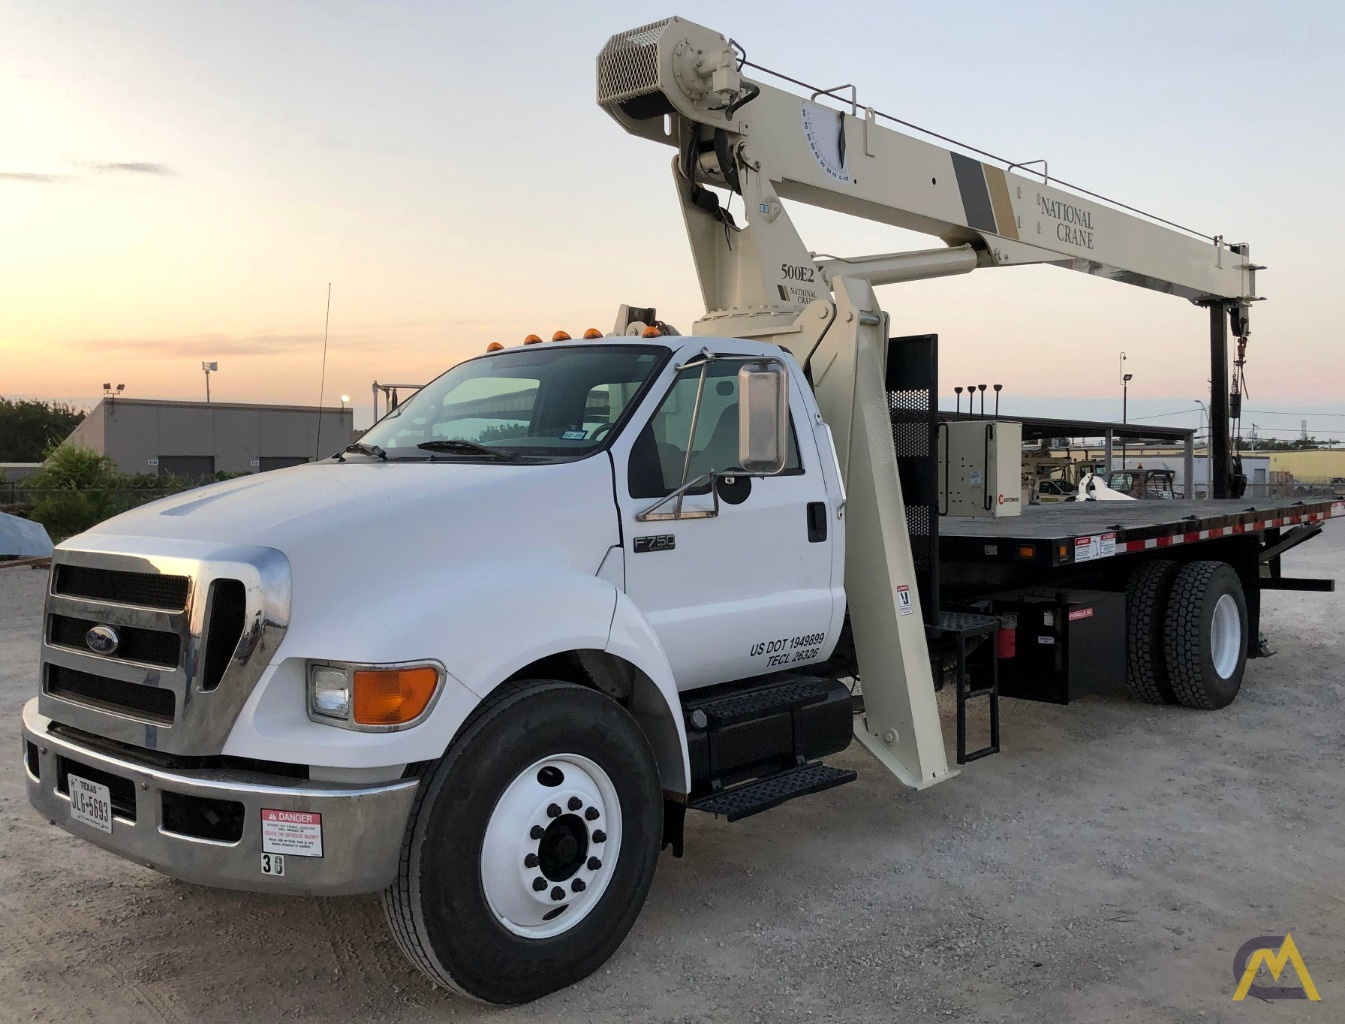 National 500E2 Series 571E2 18-Ton Boom Truck Crane on Ford F750 XL 2